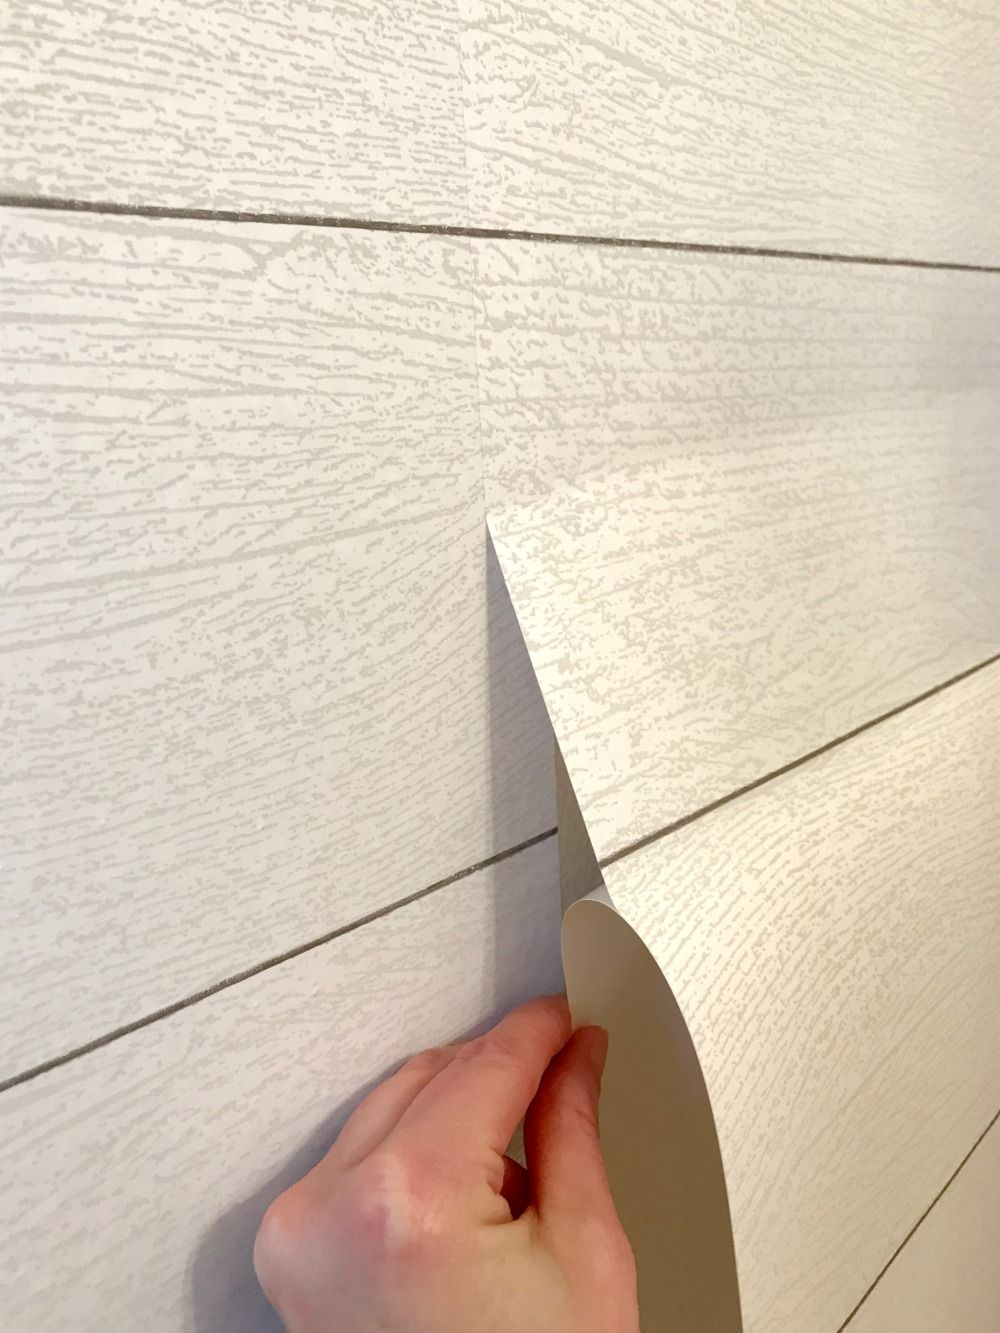 Is Removable Shiplap Wallpaper The Right Diy Project For Your Home An Honest Opinion On The Whole Process Shiplap Wall Paper Wallpaper Accent Wall Shiplap